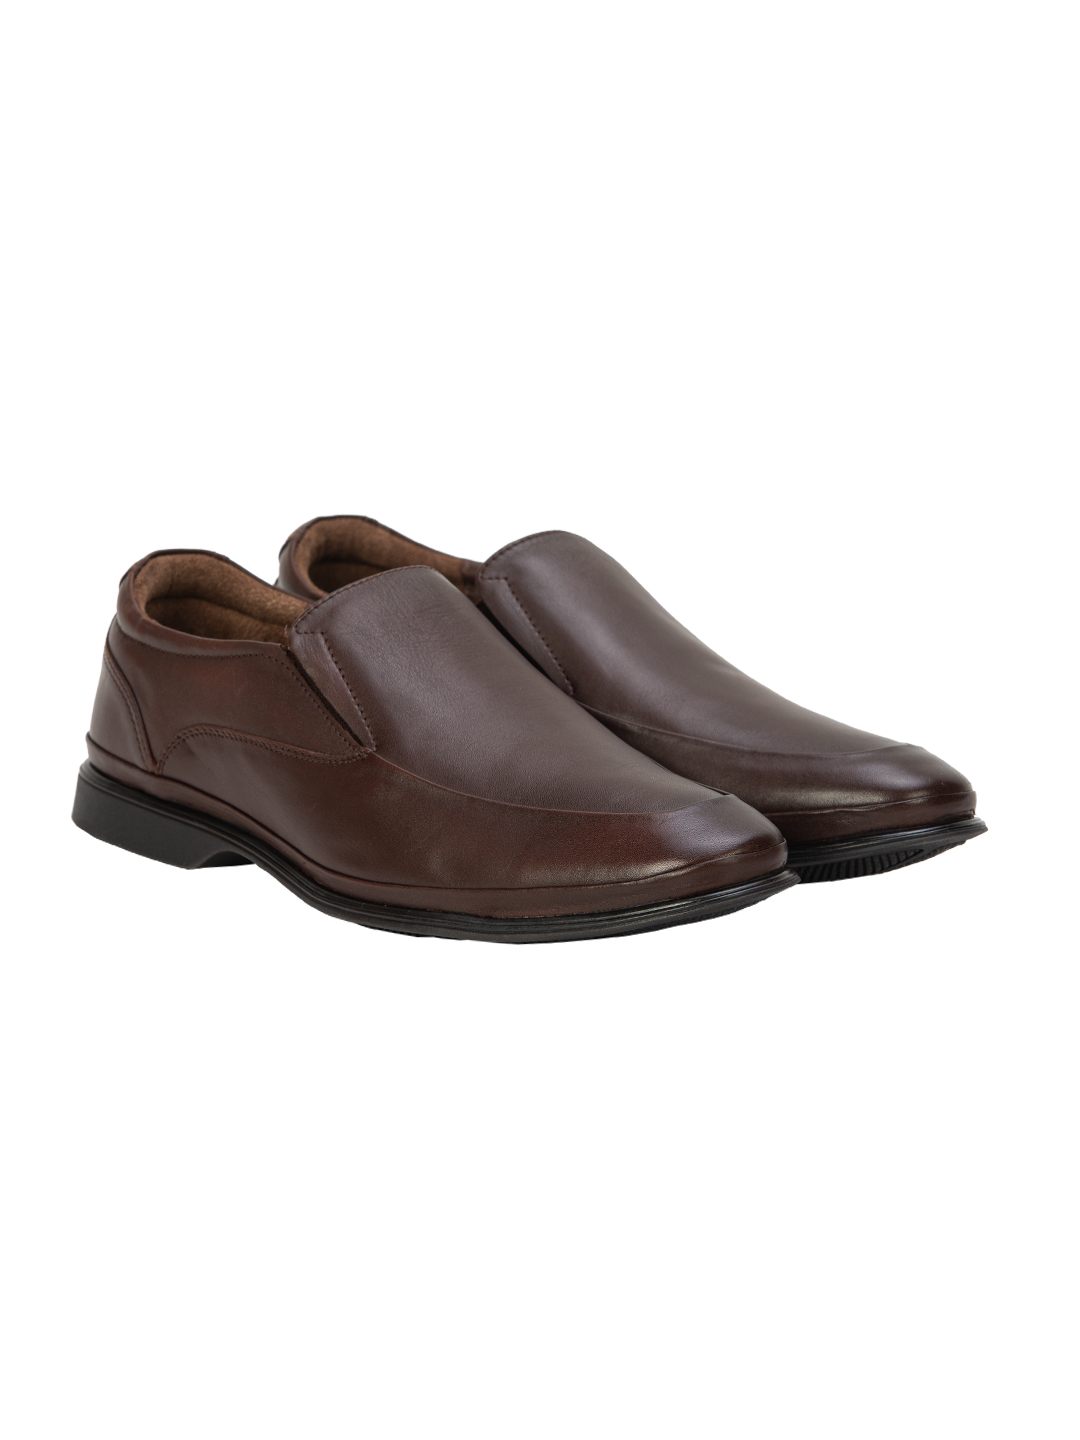 Buy Von Wellx Escher Comfort Brown Shoes Online in Bangalore